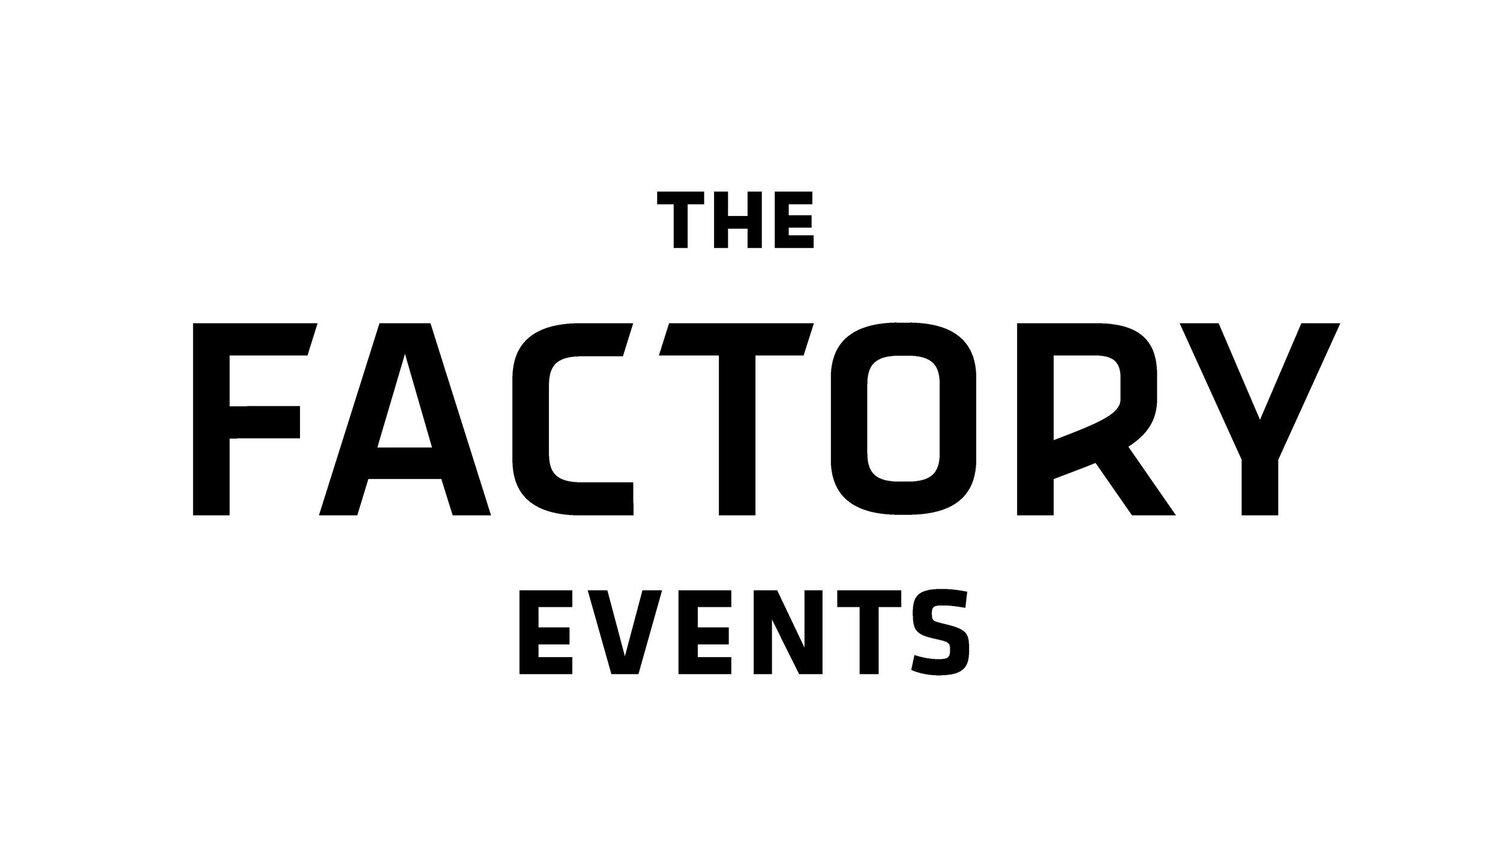 The Factory Events